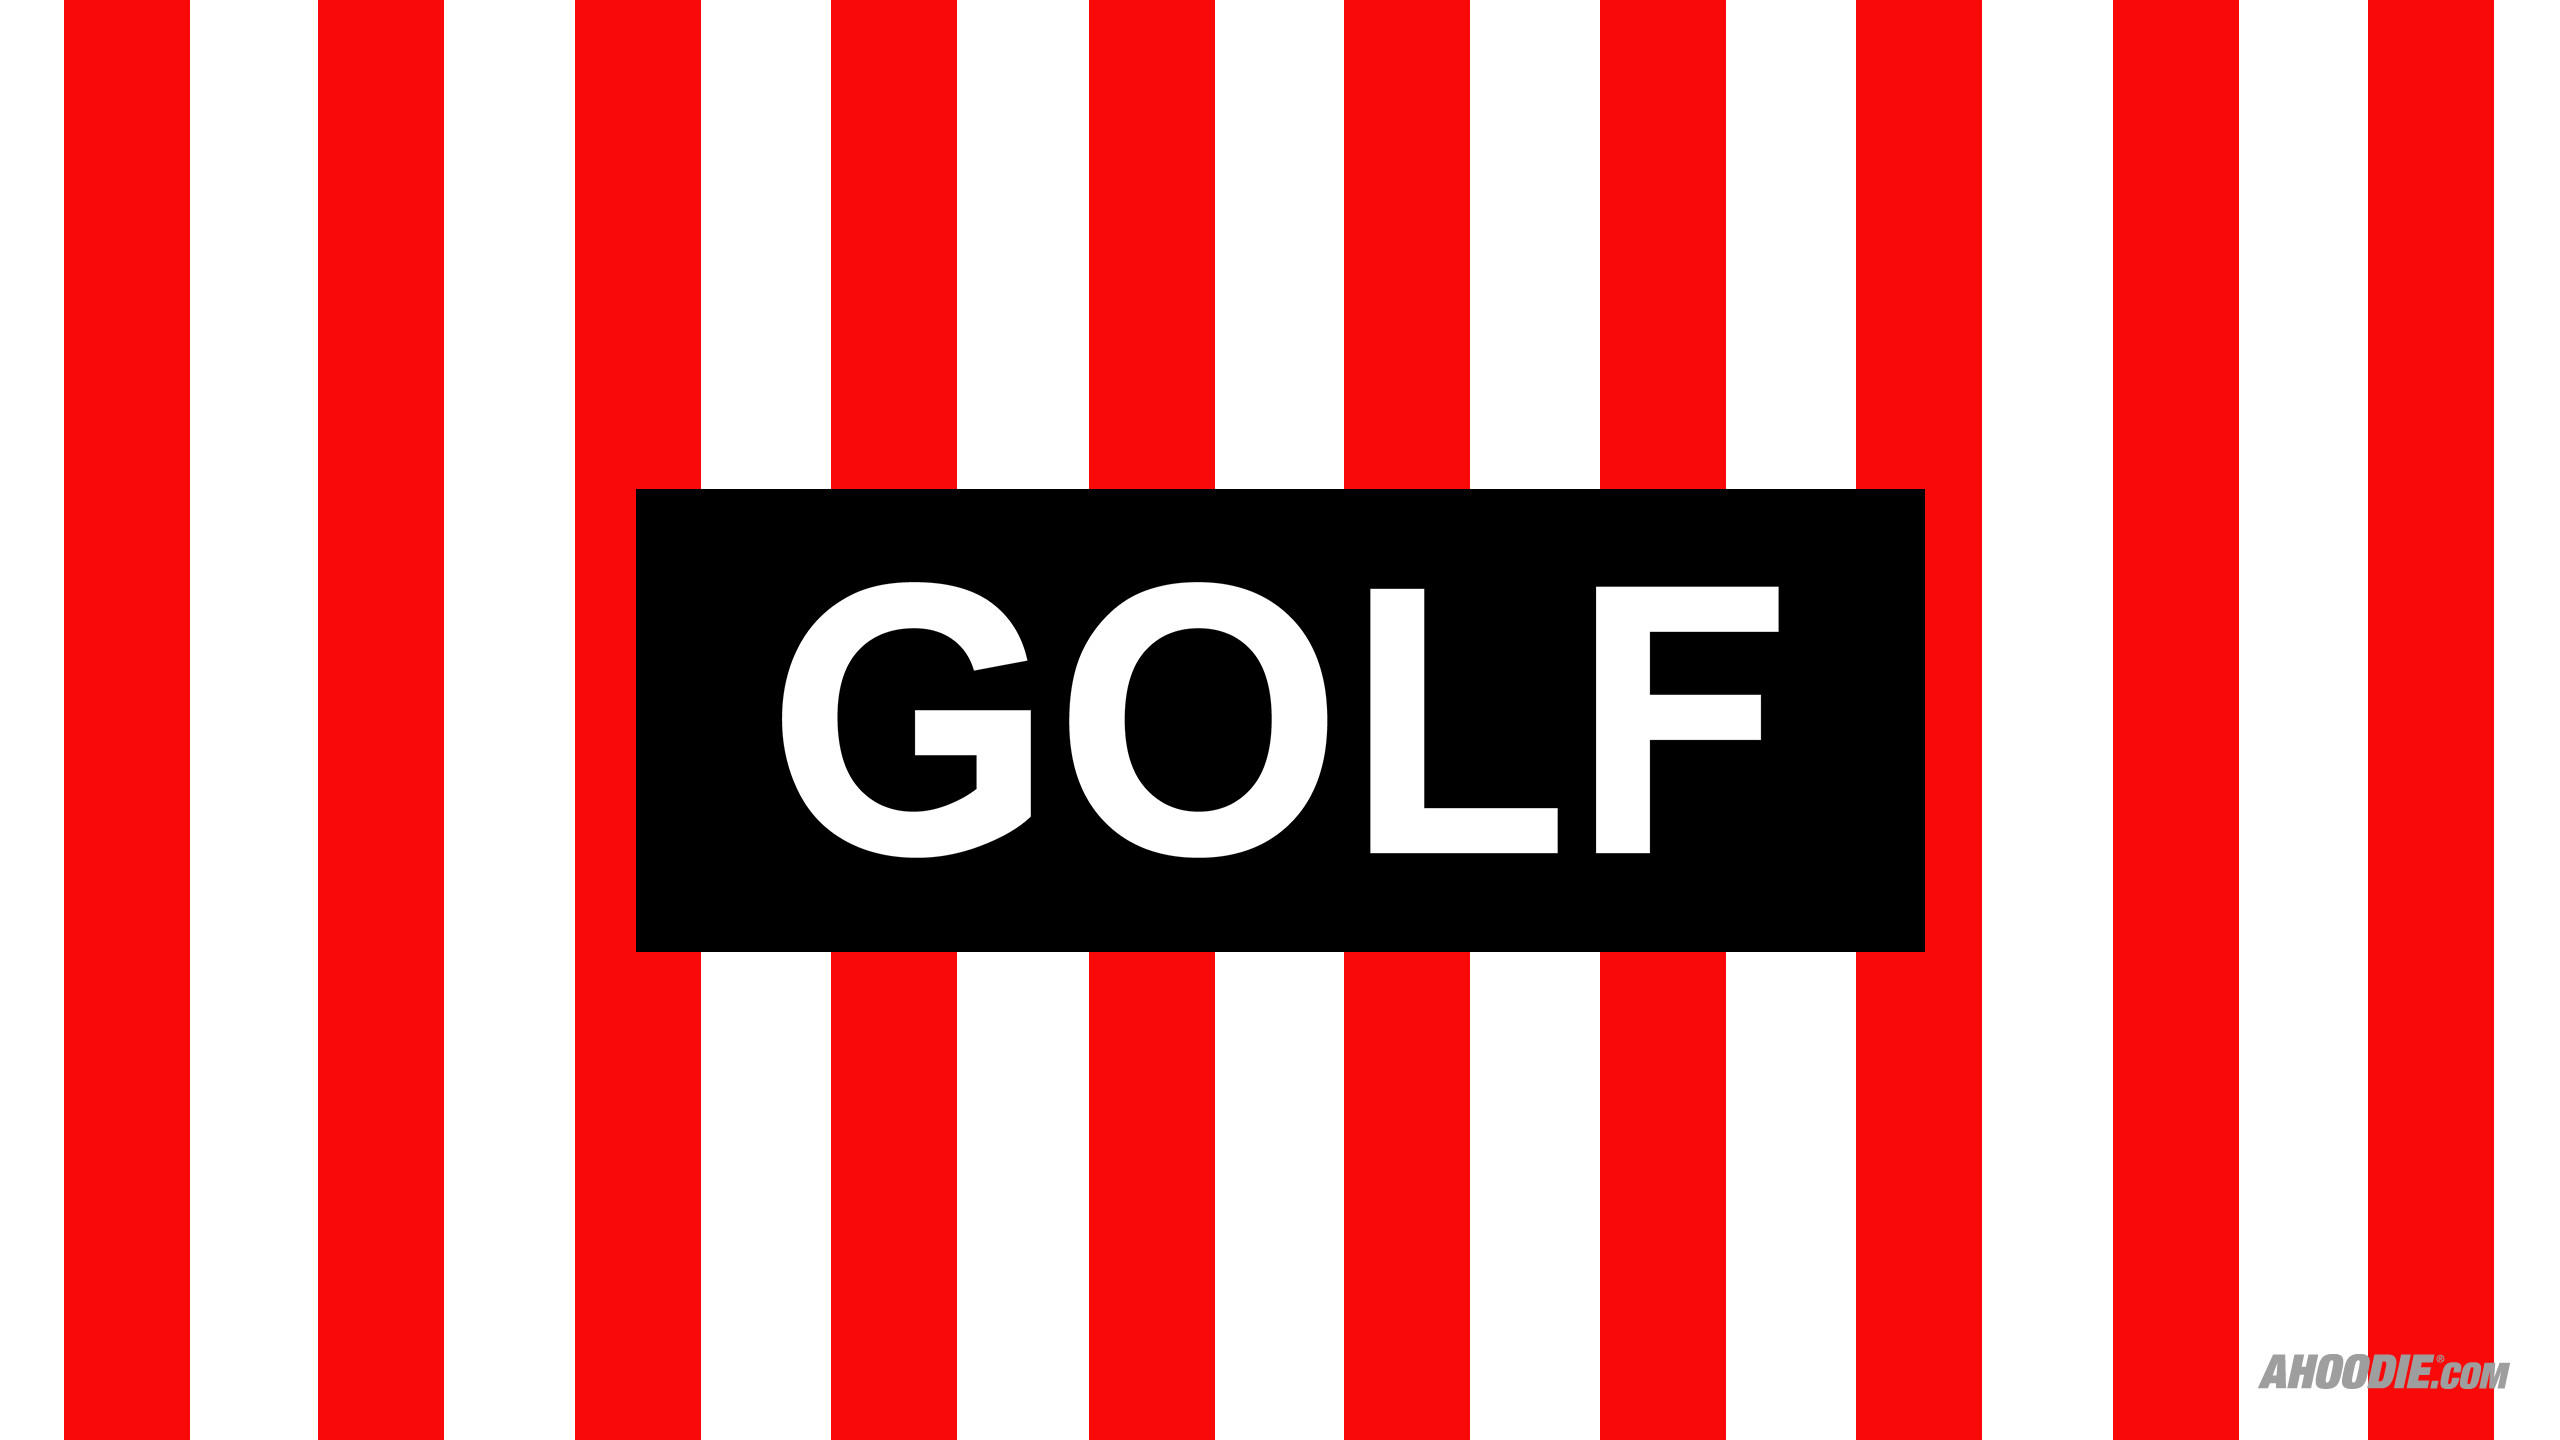 hey. i post golf stuffs because im all about that cool stuff. please get me  up on those top posts fam. much love.